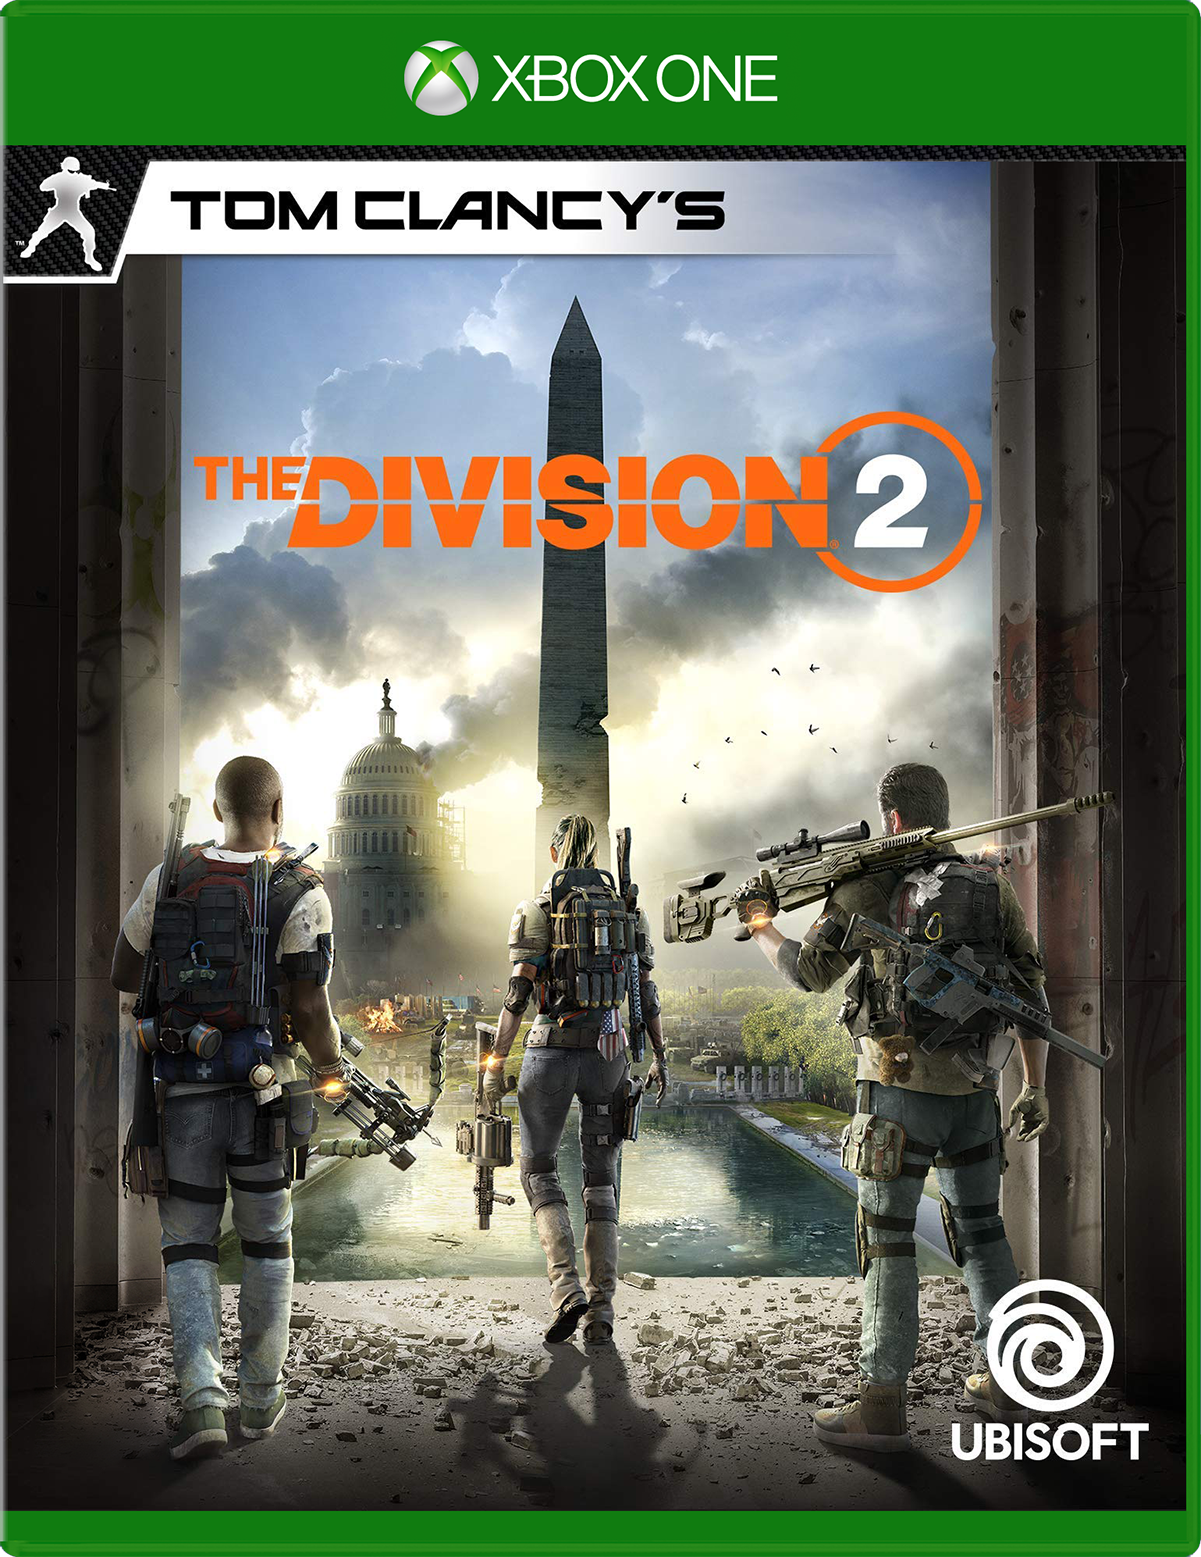 b00- Tom Clancy's The Division 2 Game box